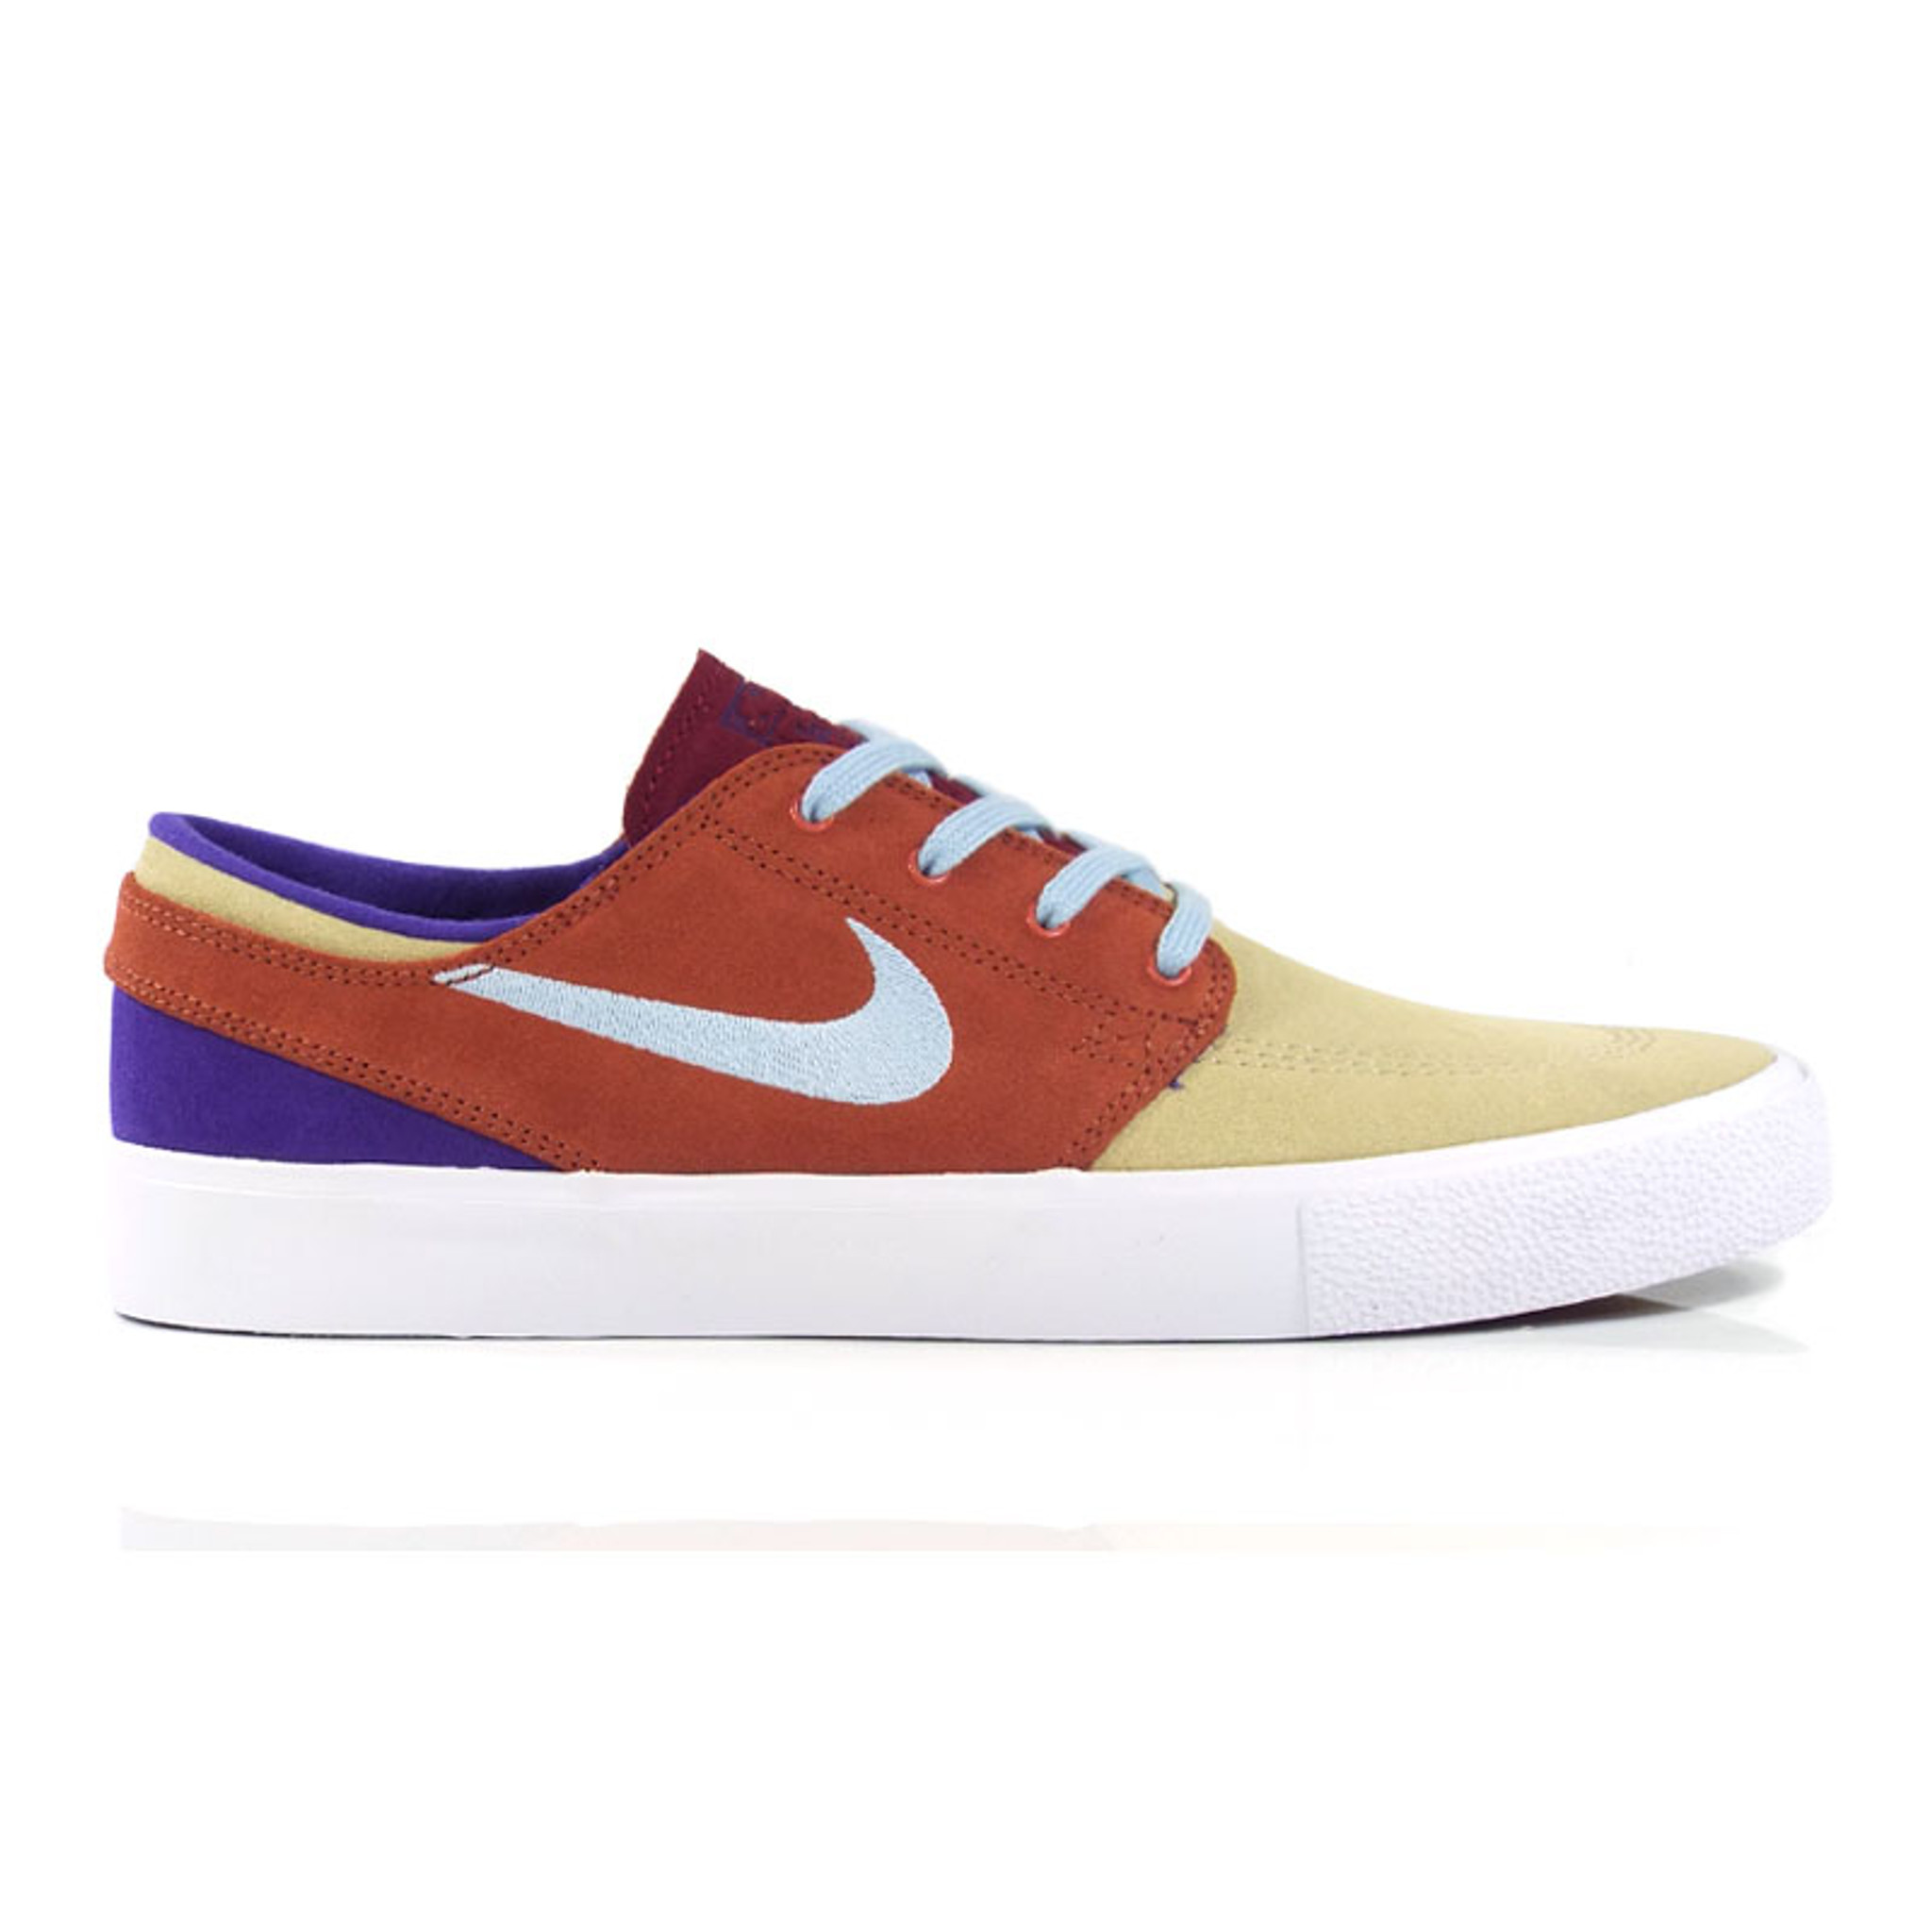 cheap for sale wholesale dealer buying cheap Nike SB Zoom Janoski RM Shoes - Desert Ore/Light Armory Blue - Dusty Peach